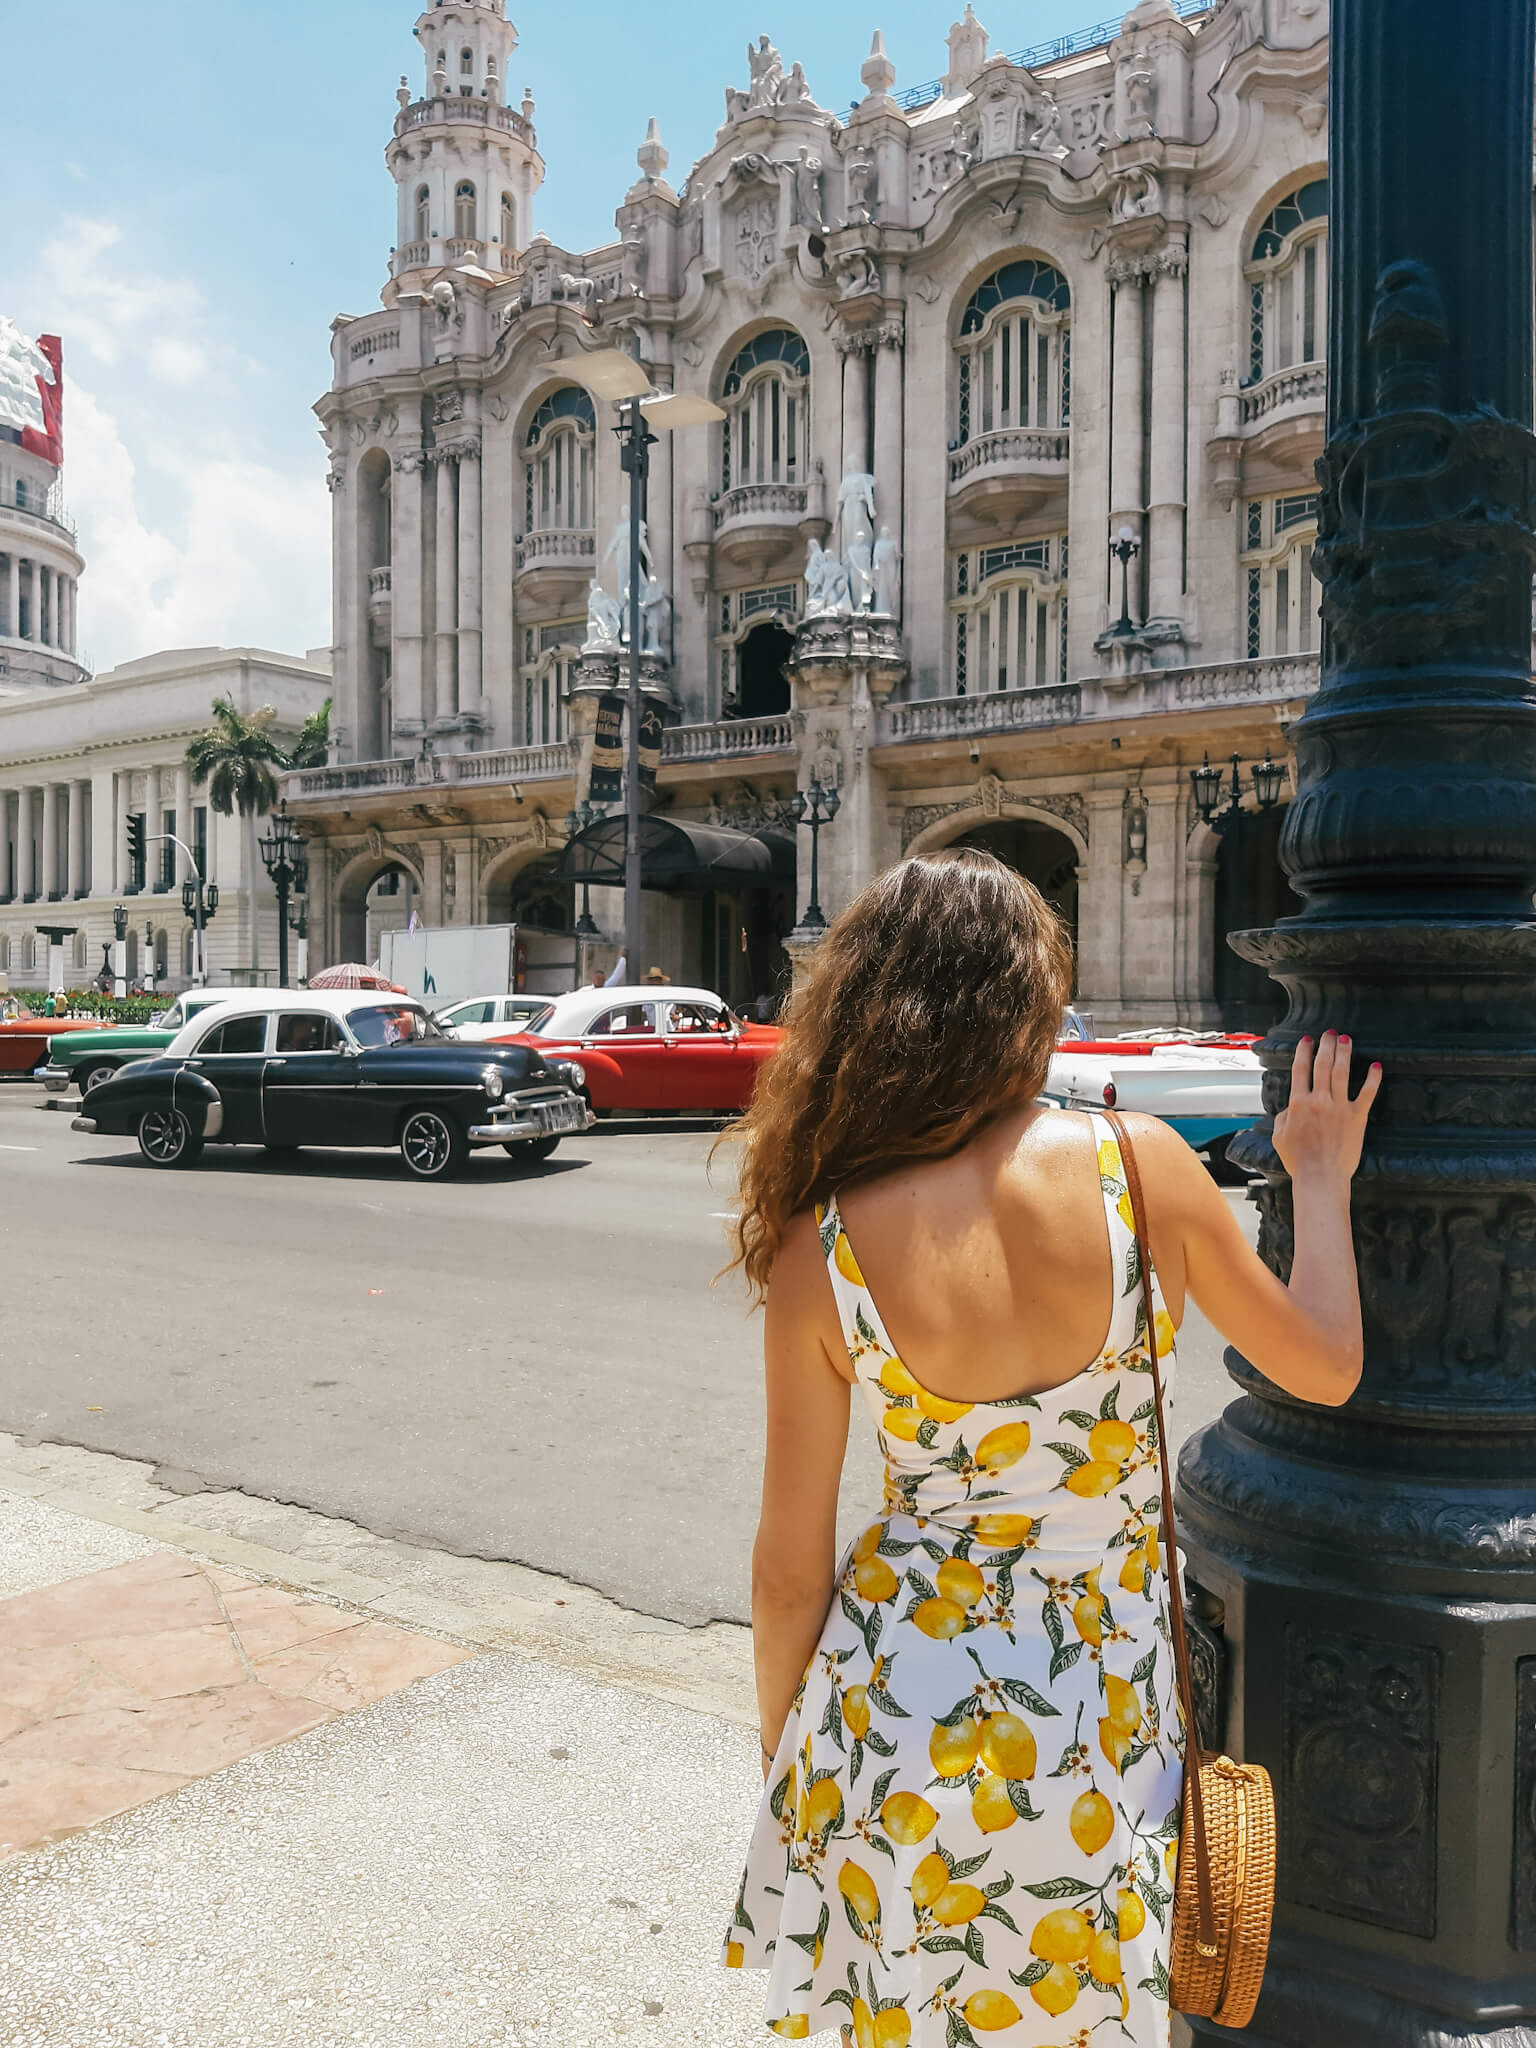 Havana views